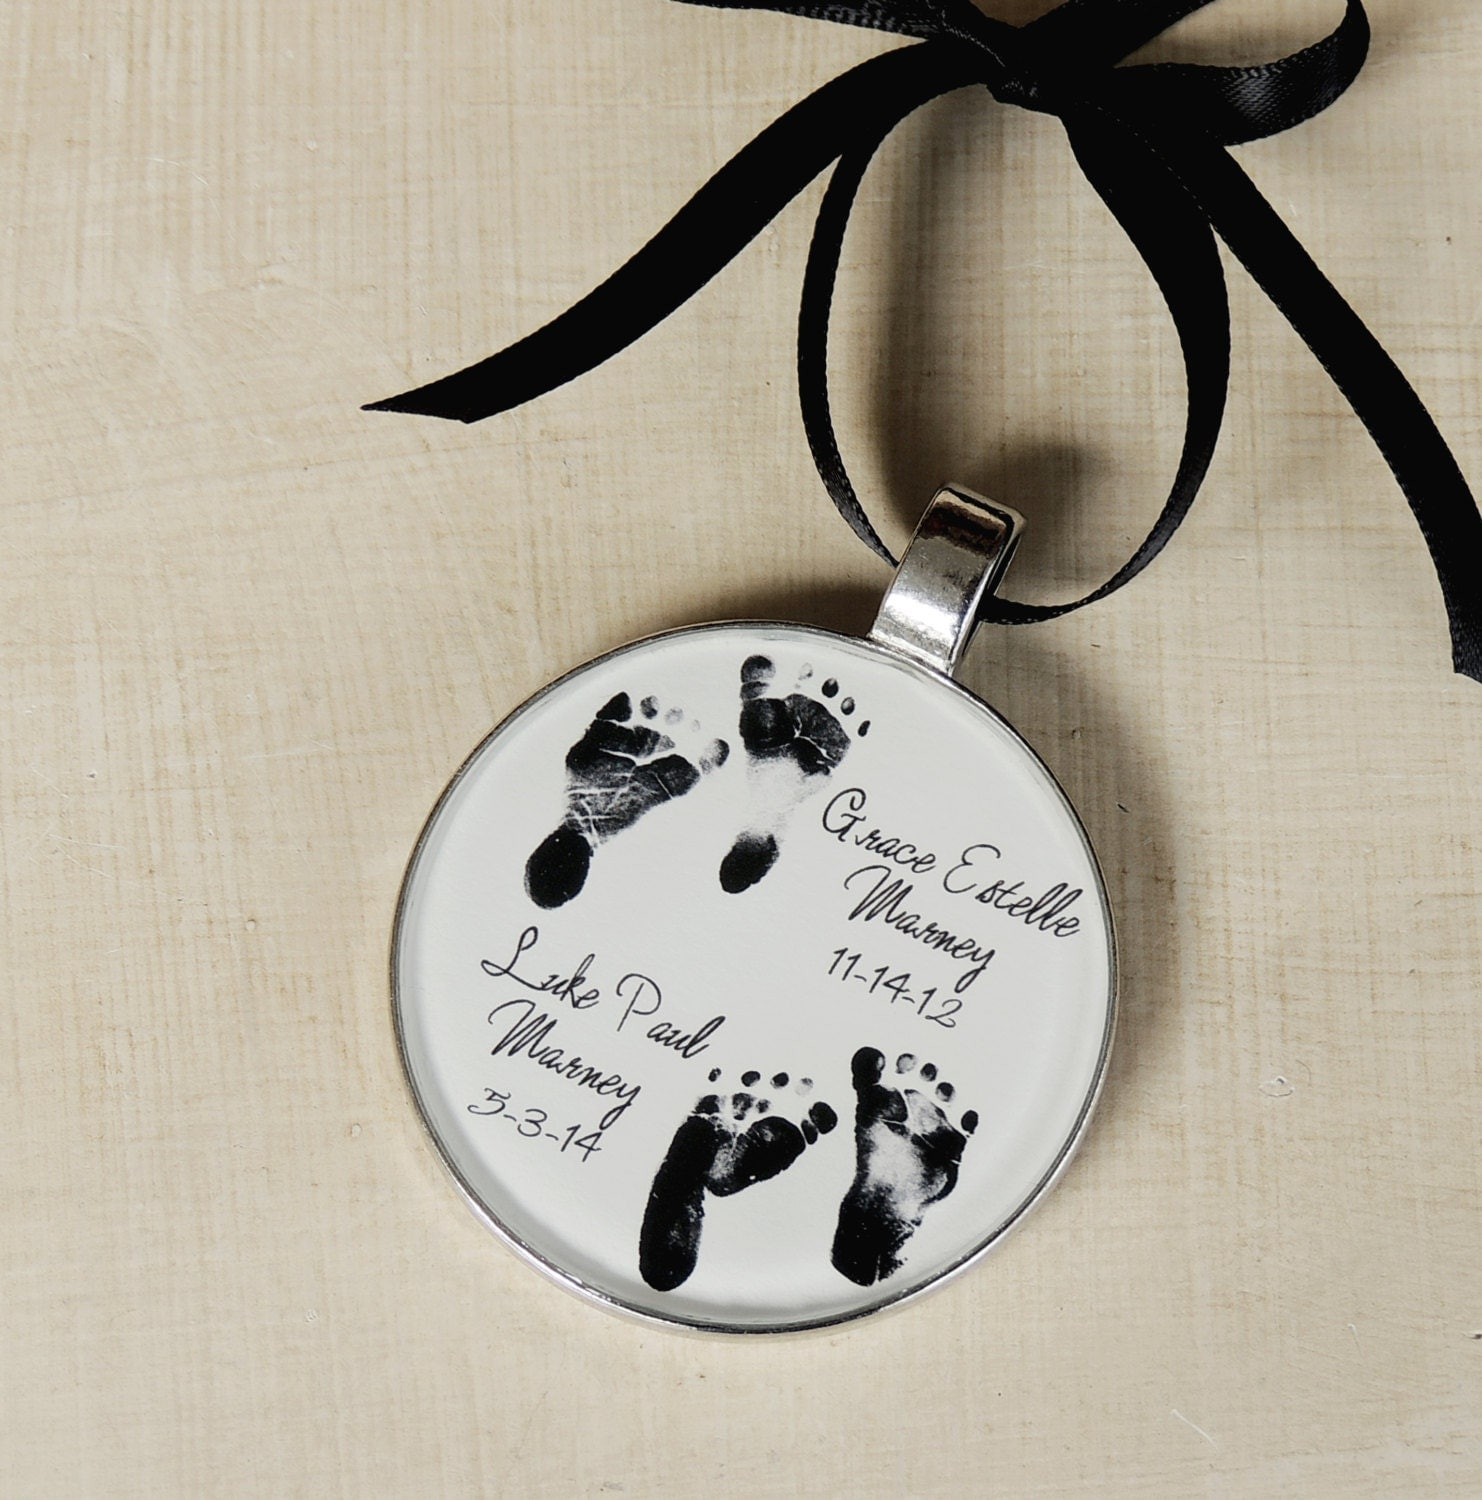 Pet memorial christmas ornaments - Baby Footprint Ornament Child S Footprint Ornament Baby S 1st Christmas Ornament Infant Loss